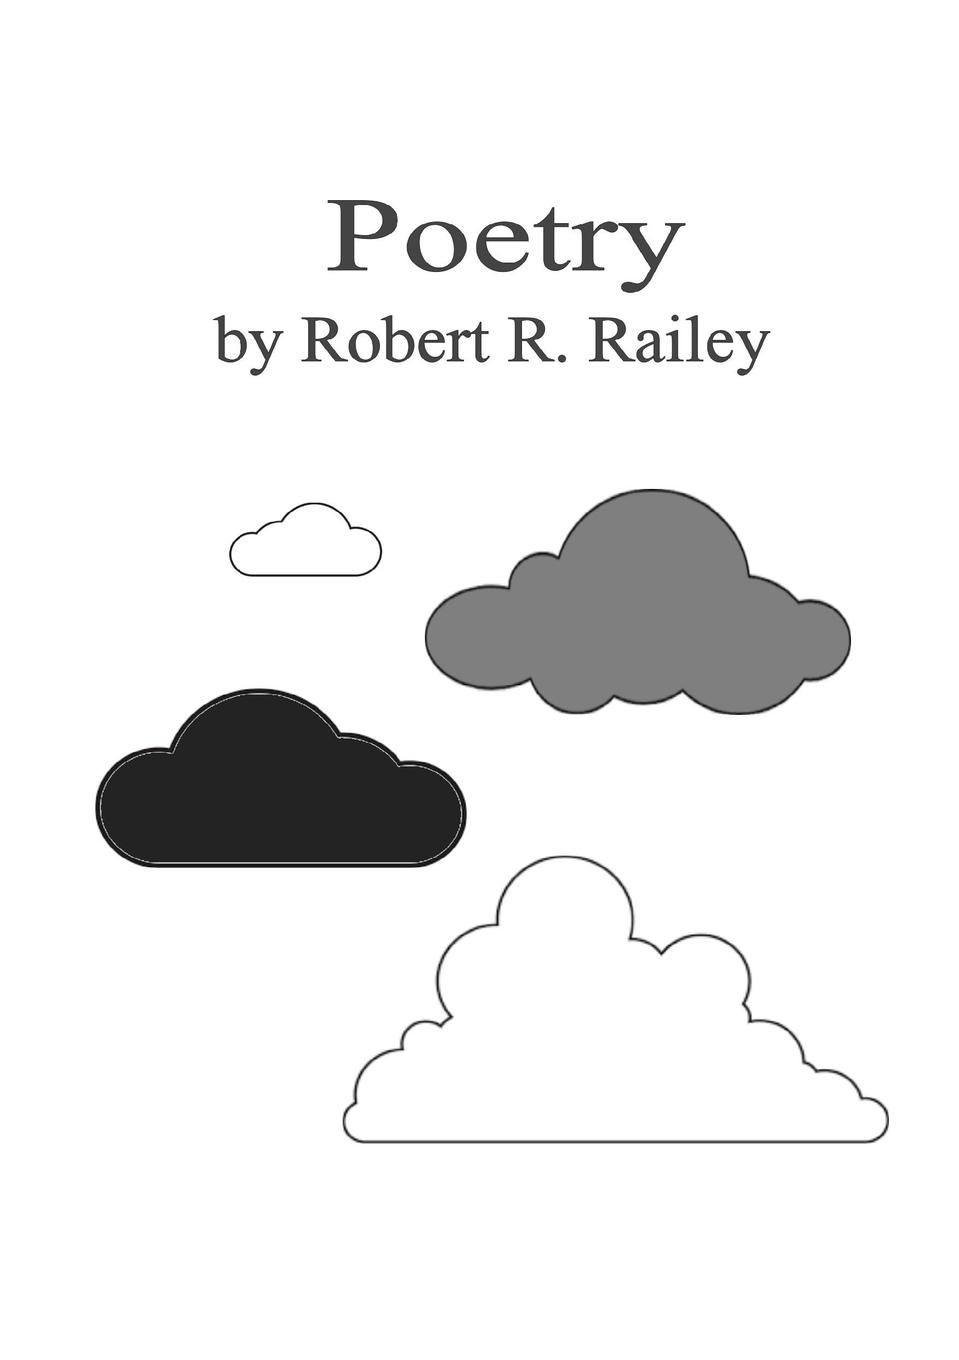 Poetry Since much of my adult life has been spent learning ways...